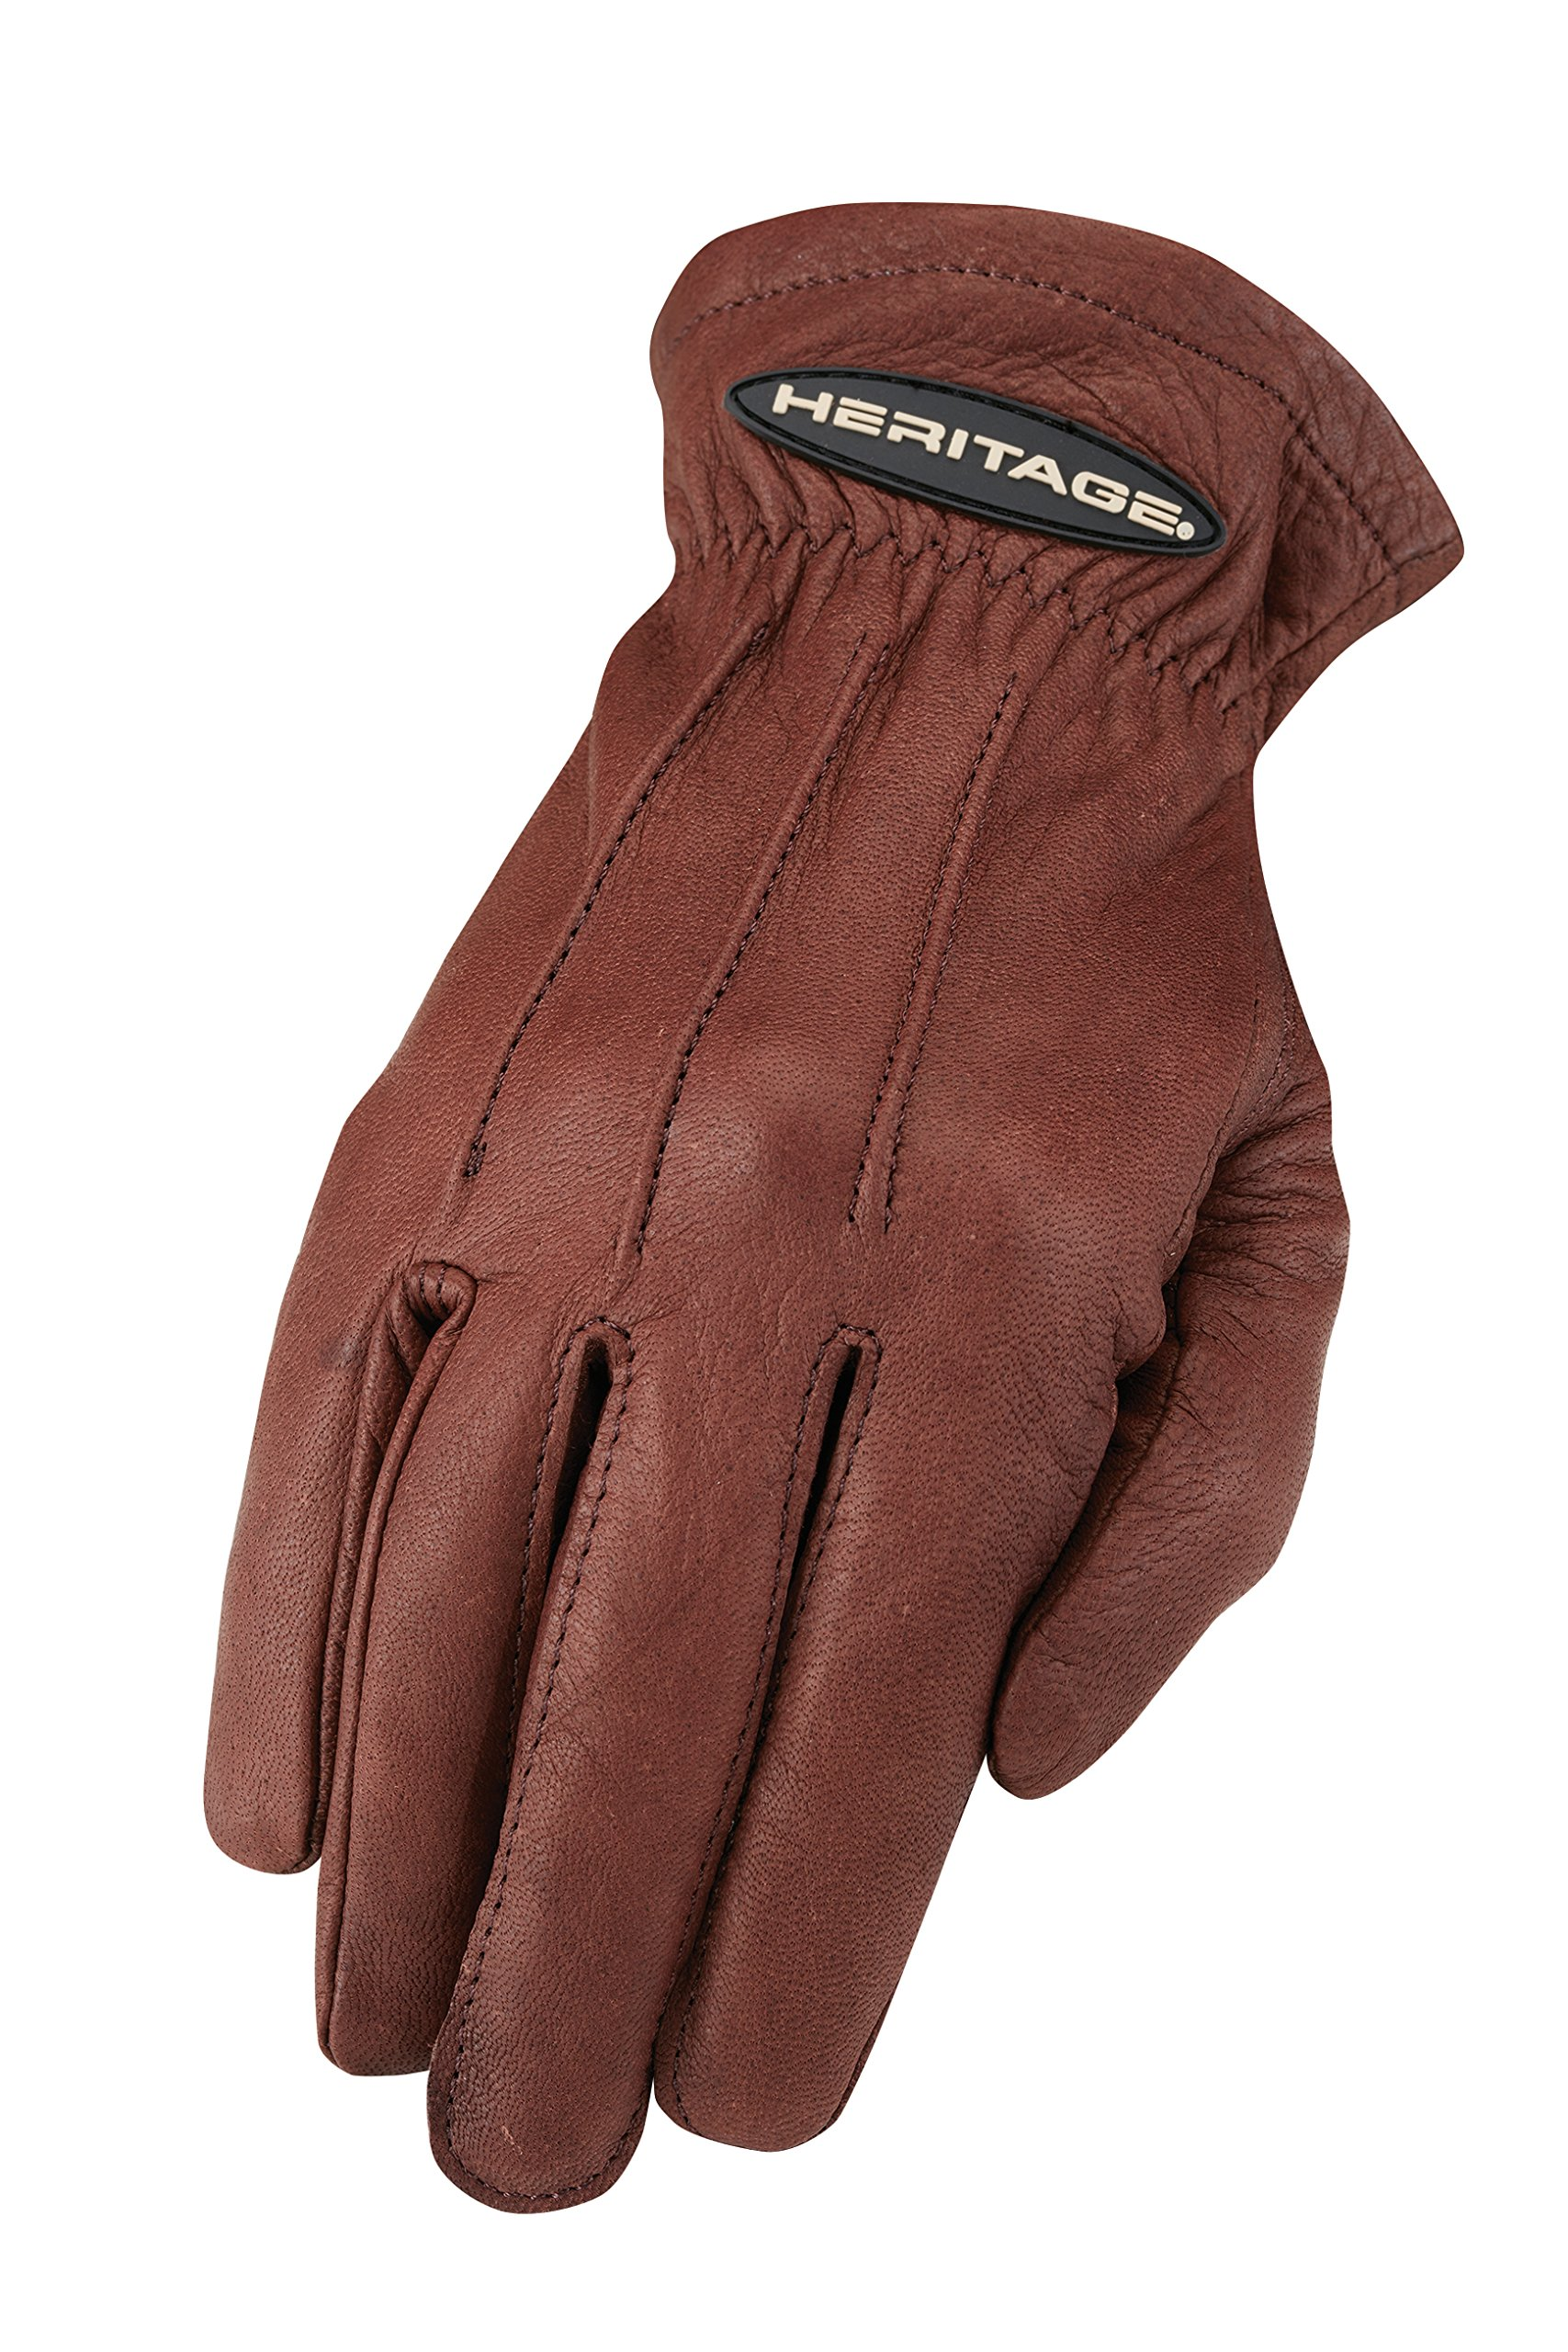 Heritage Trail Gloves, Size 9, Chocolate Brown